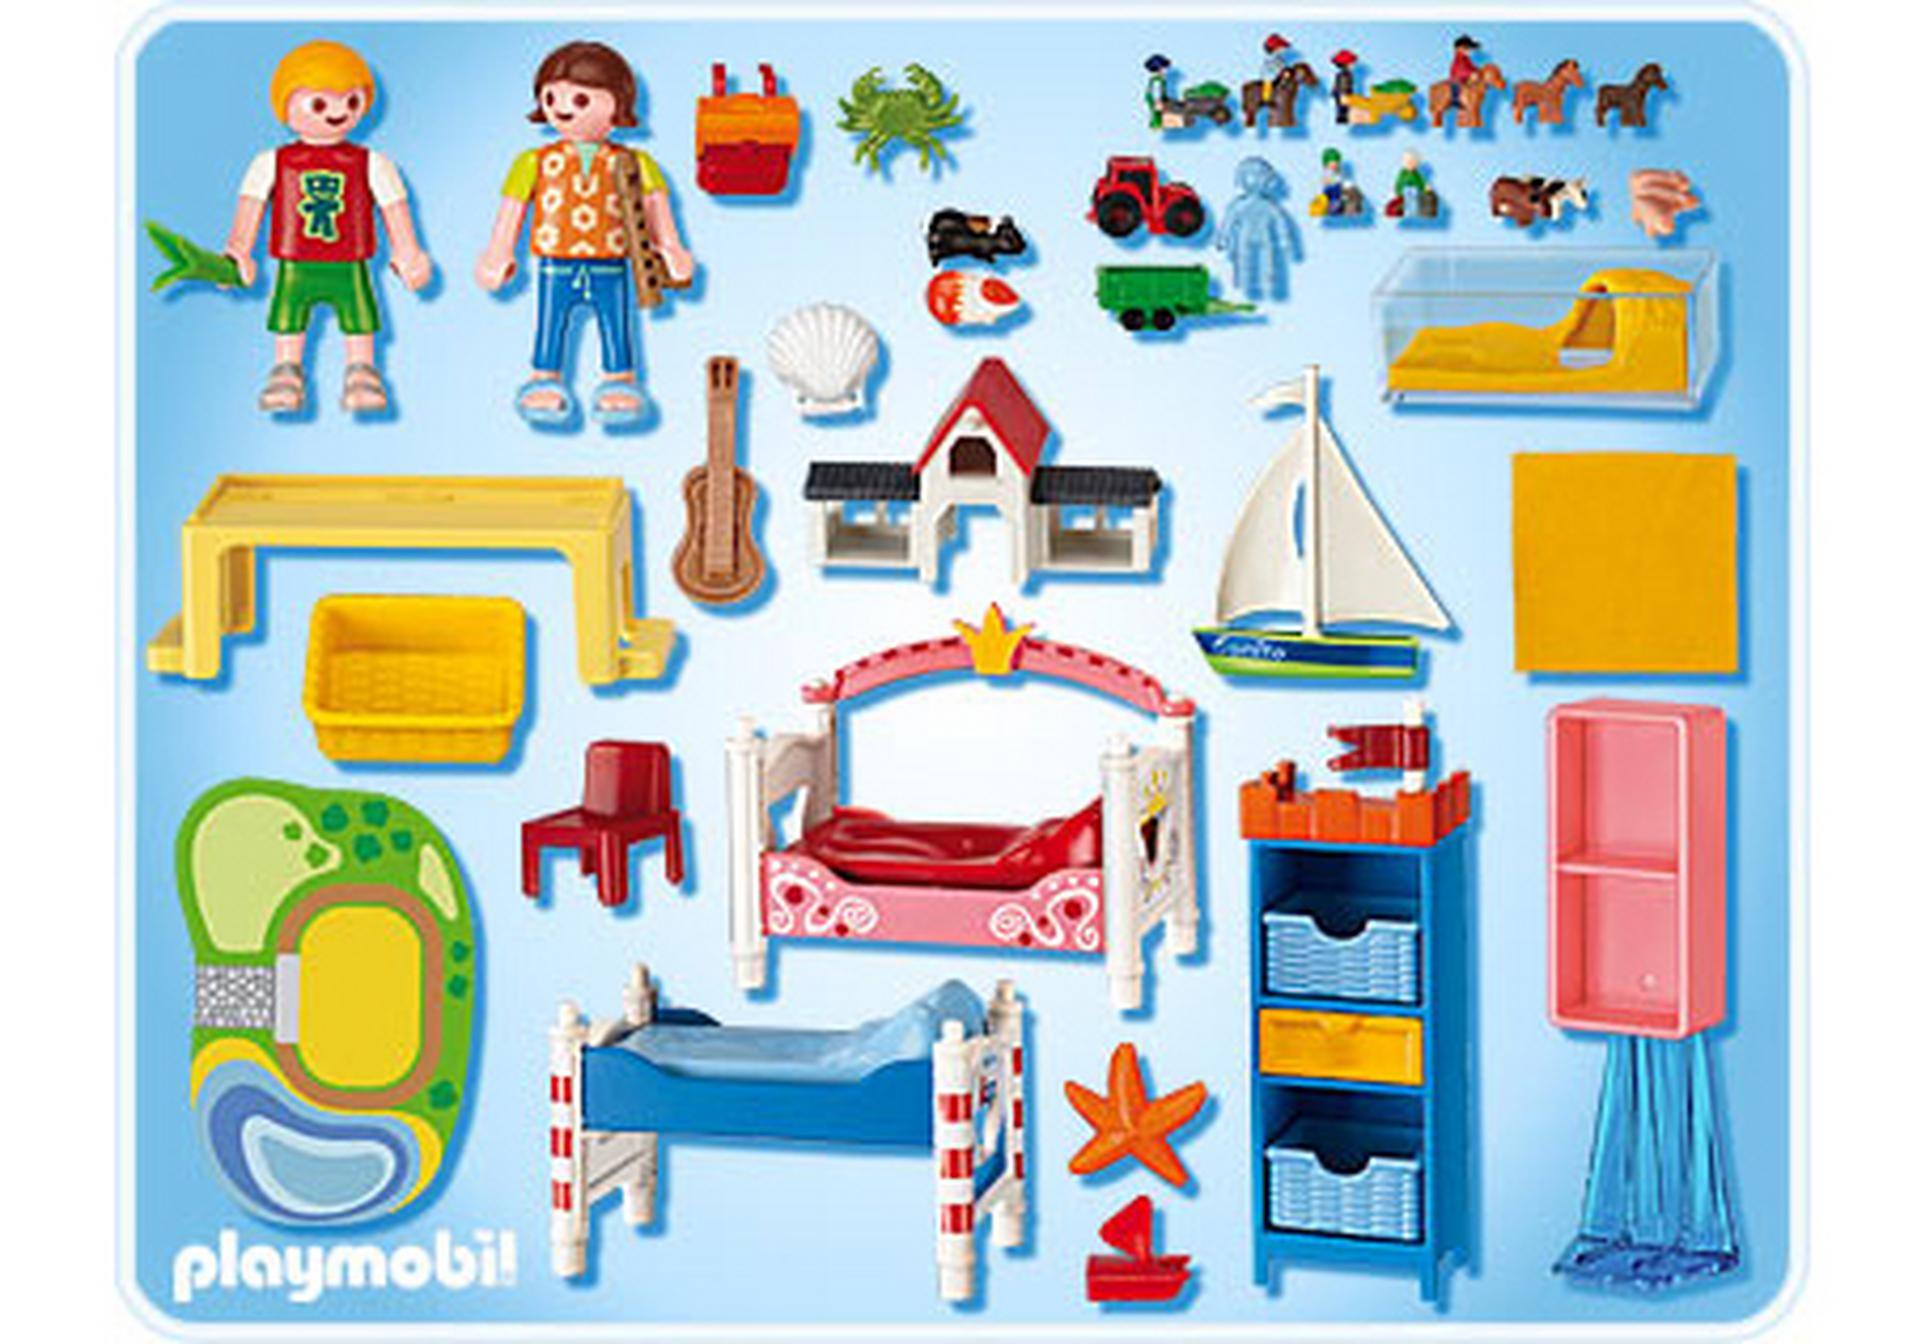 chambre des enfants avec lits d cor s 5333 a playmobil france. Black Bedroom Furniture Sets. Home Design Ideas